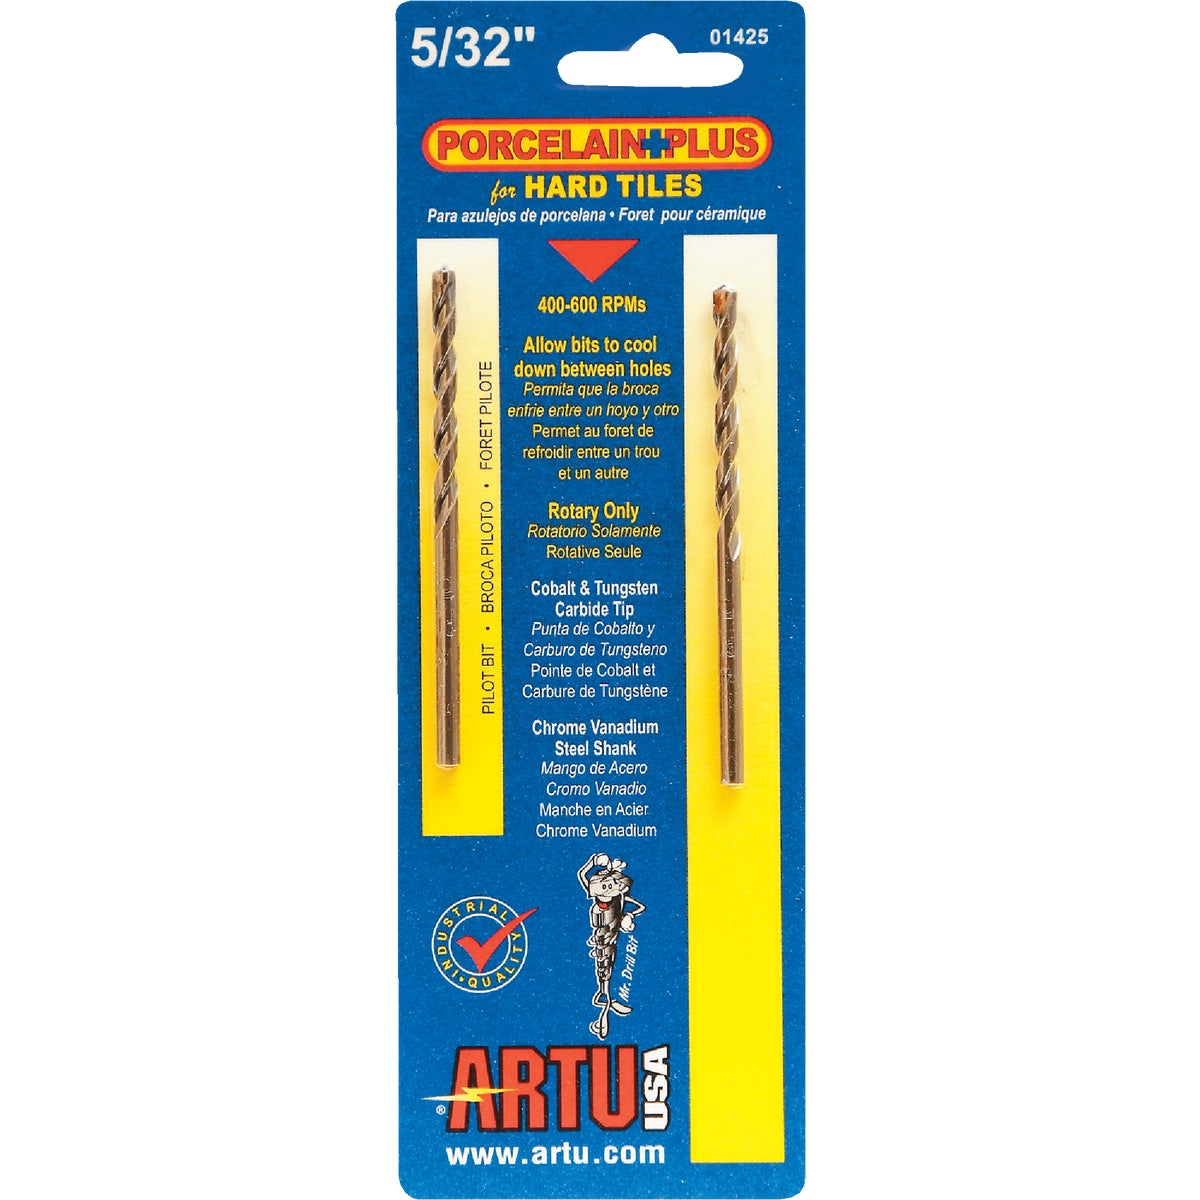 "5/32"" PORC AND TILE BIT - 01425 by Artu Usa Inc"